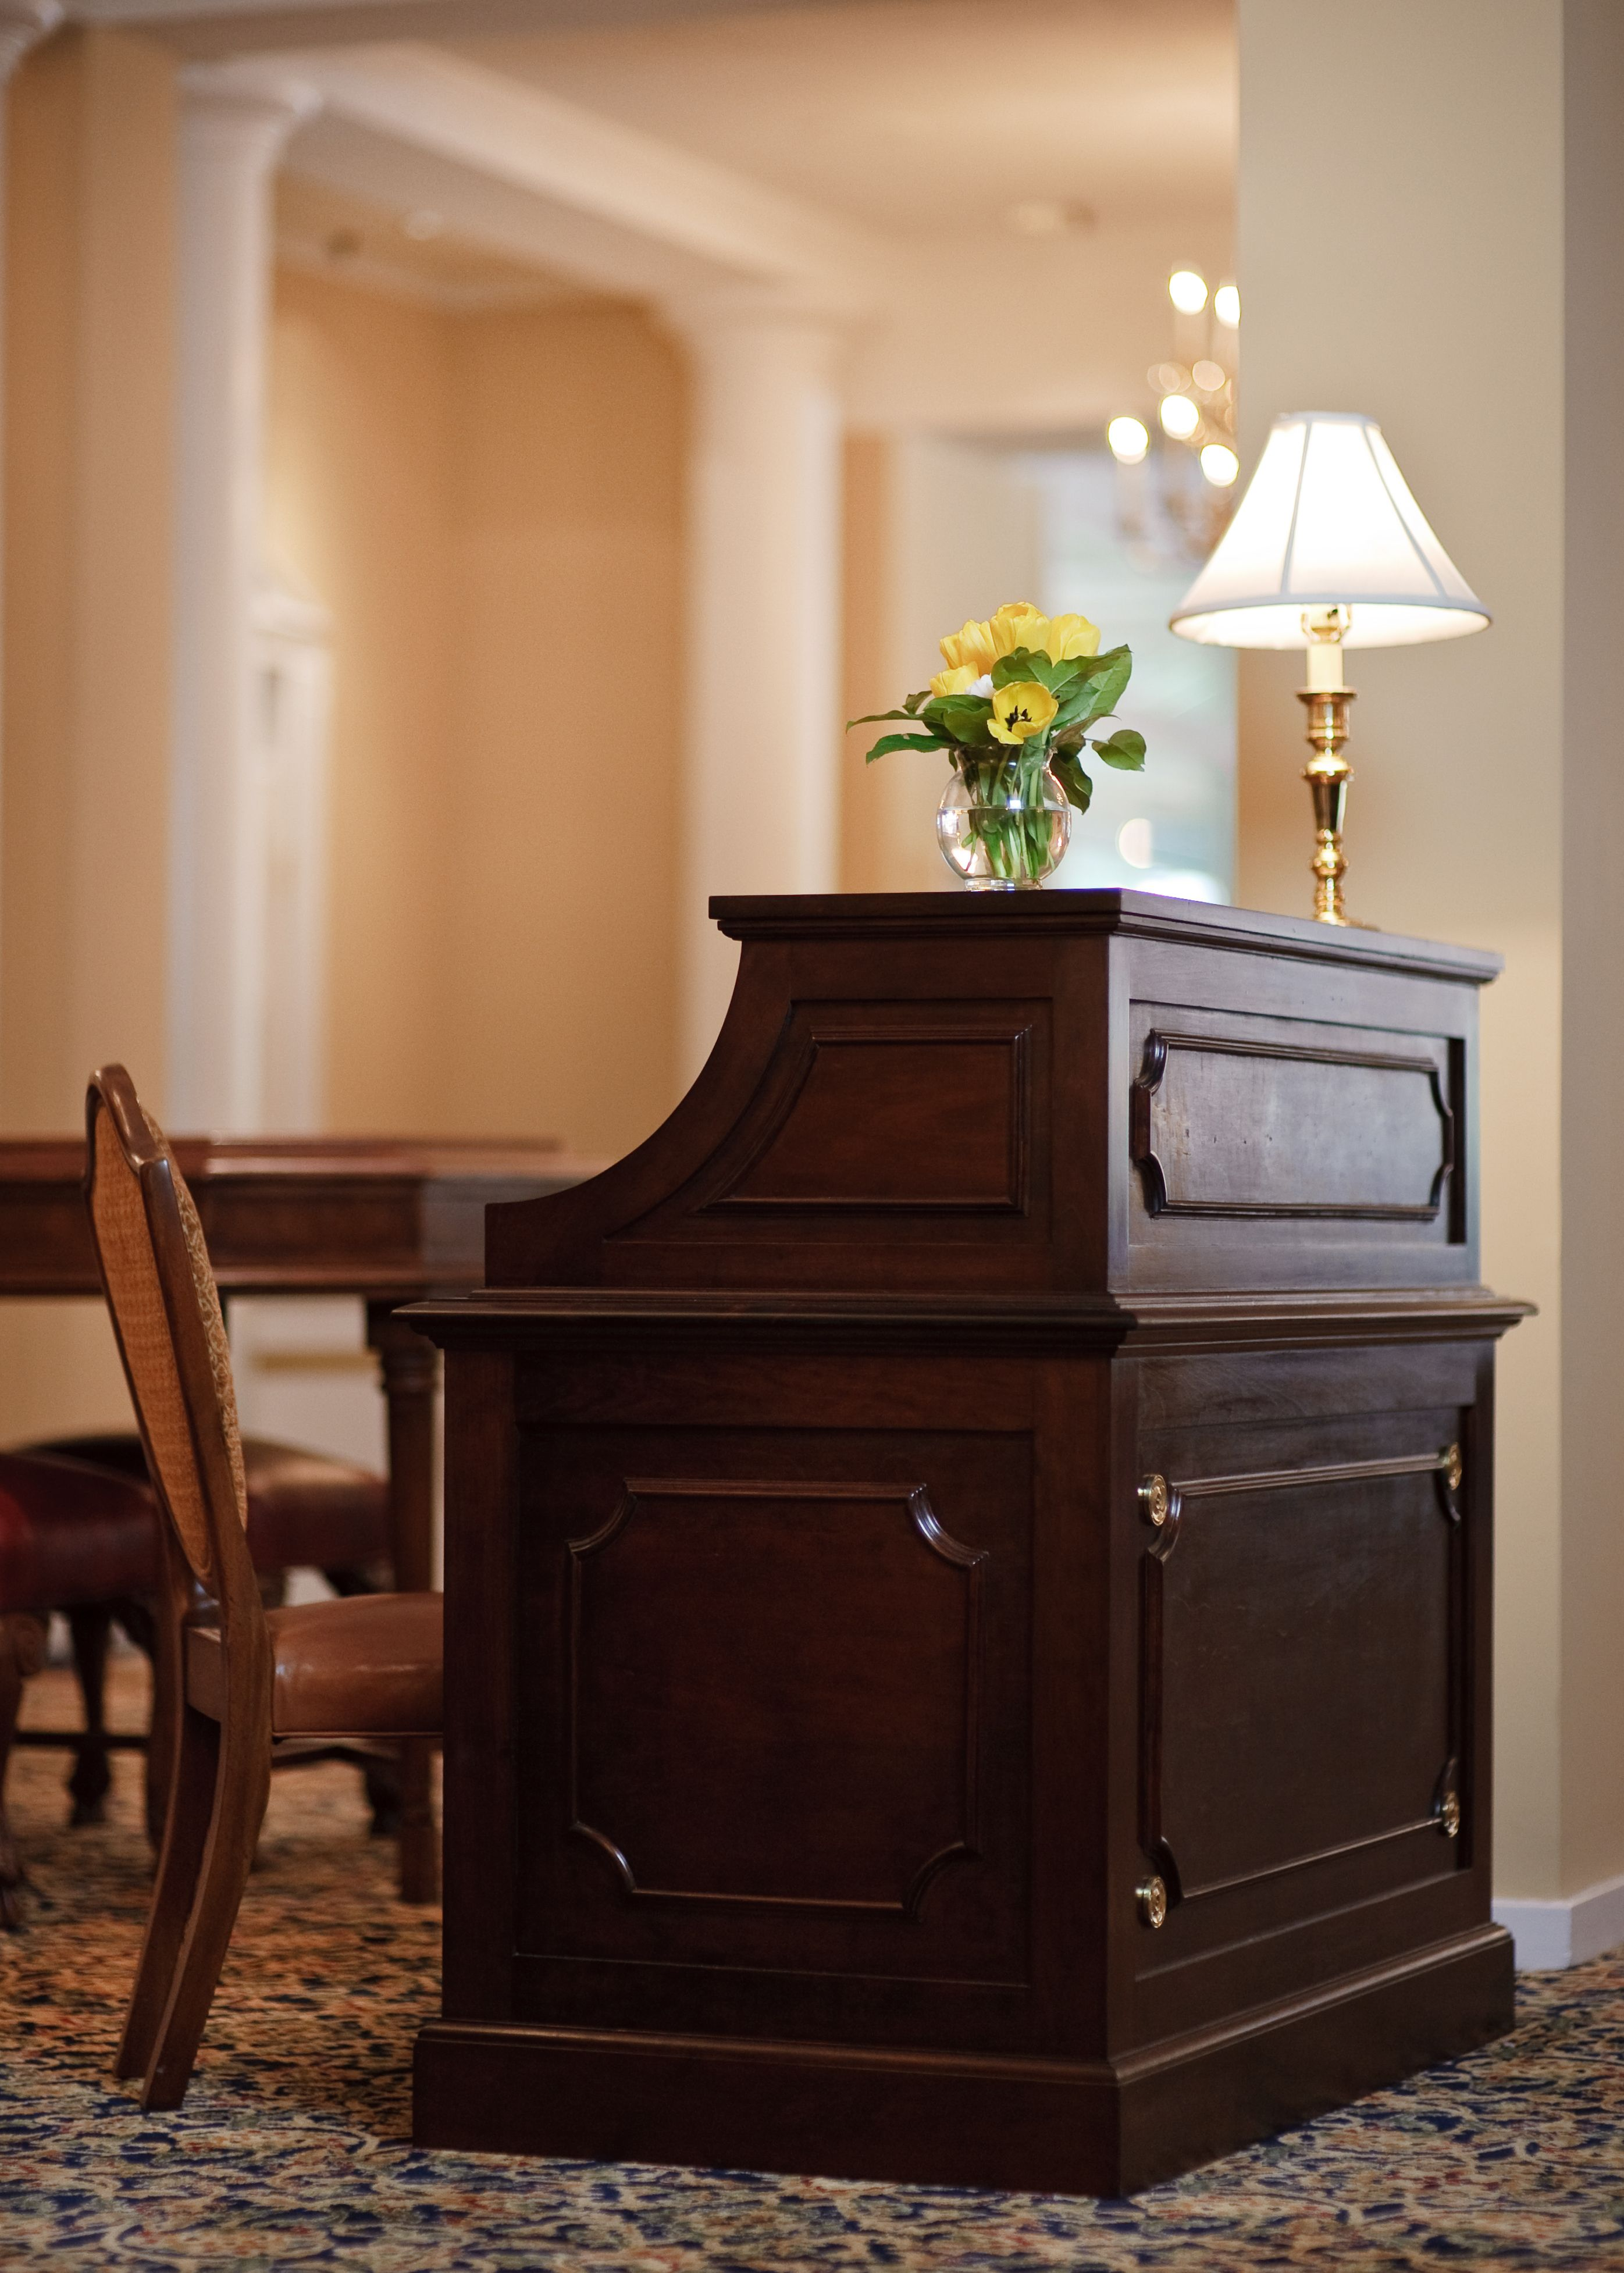 Hotel Room Desk: I Was Inspired By An Antique Roll Top Desk In Designing